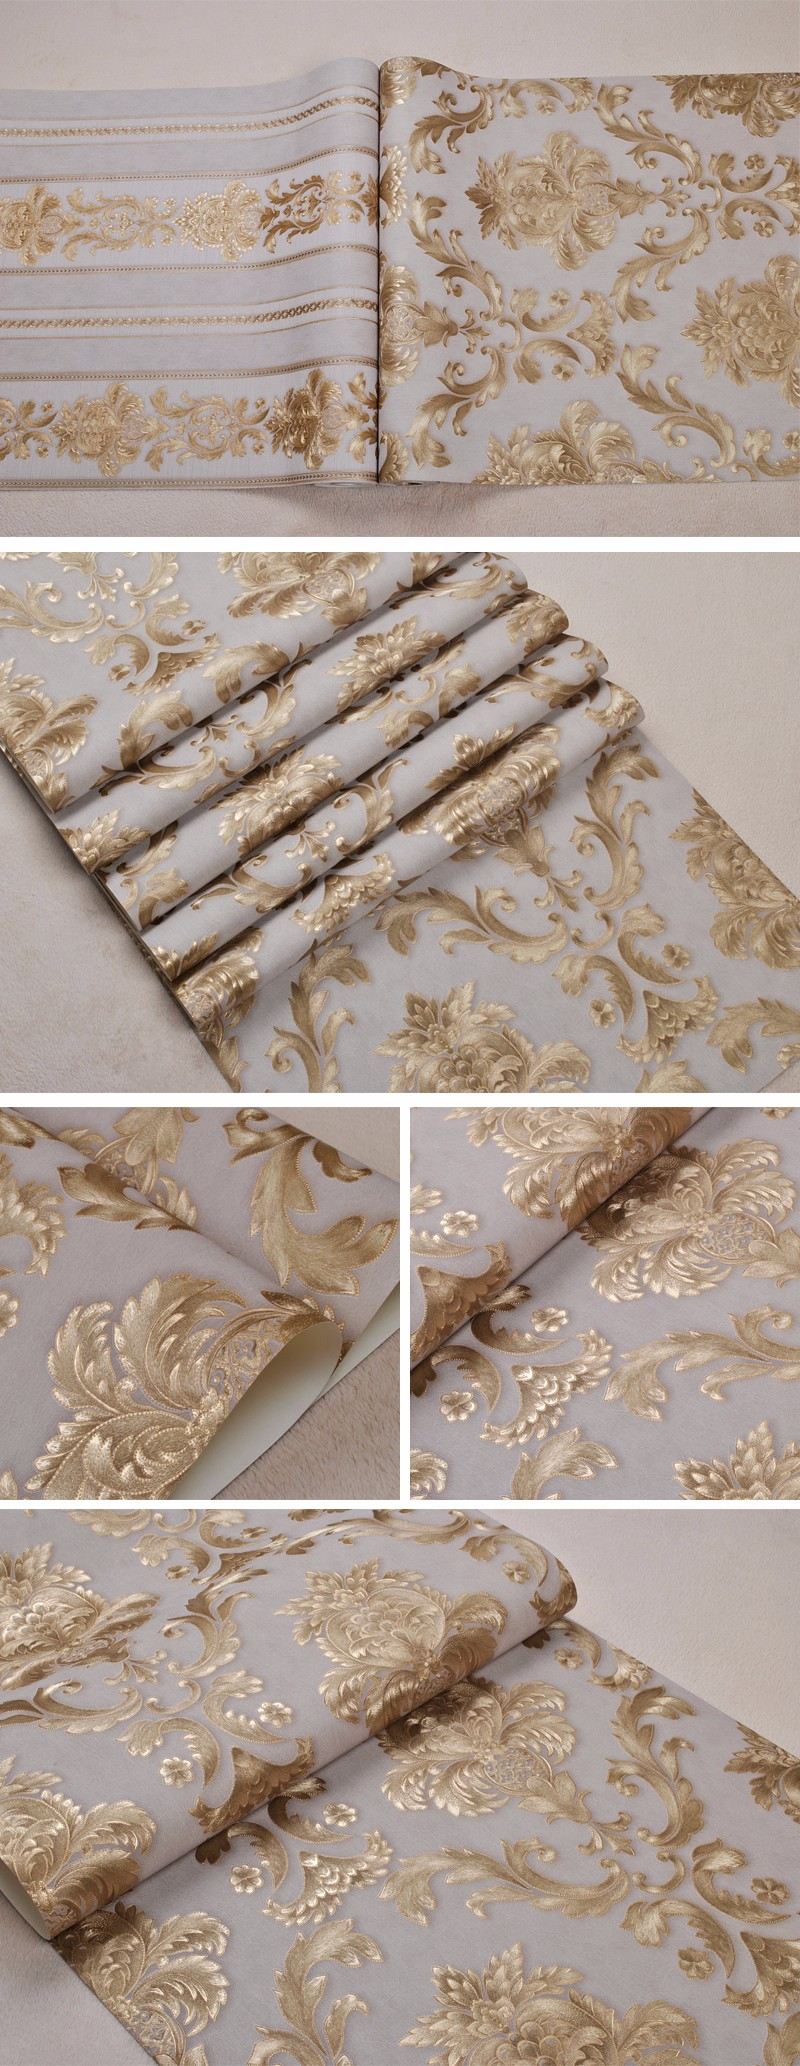 Metallic Gold Wallpaper Textured Vinyl Metallic Gold Damask Wallpaper Buy Wallpaper Product On Alibaba